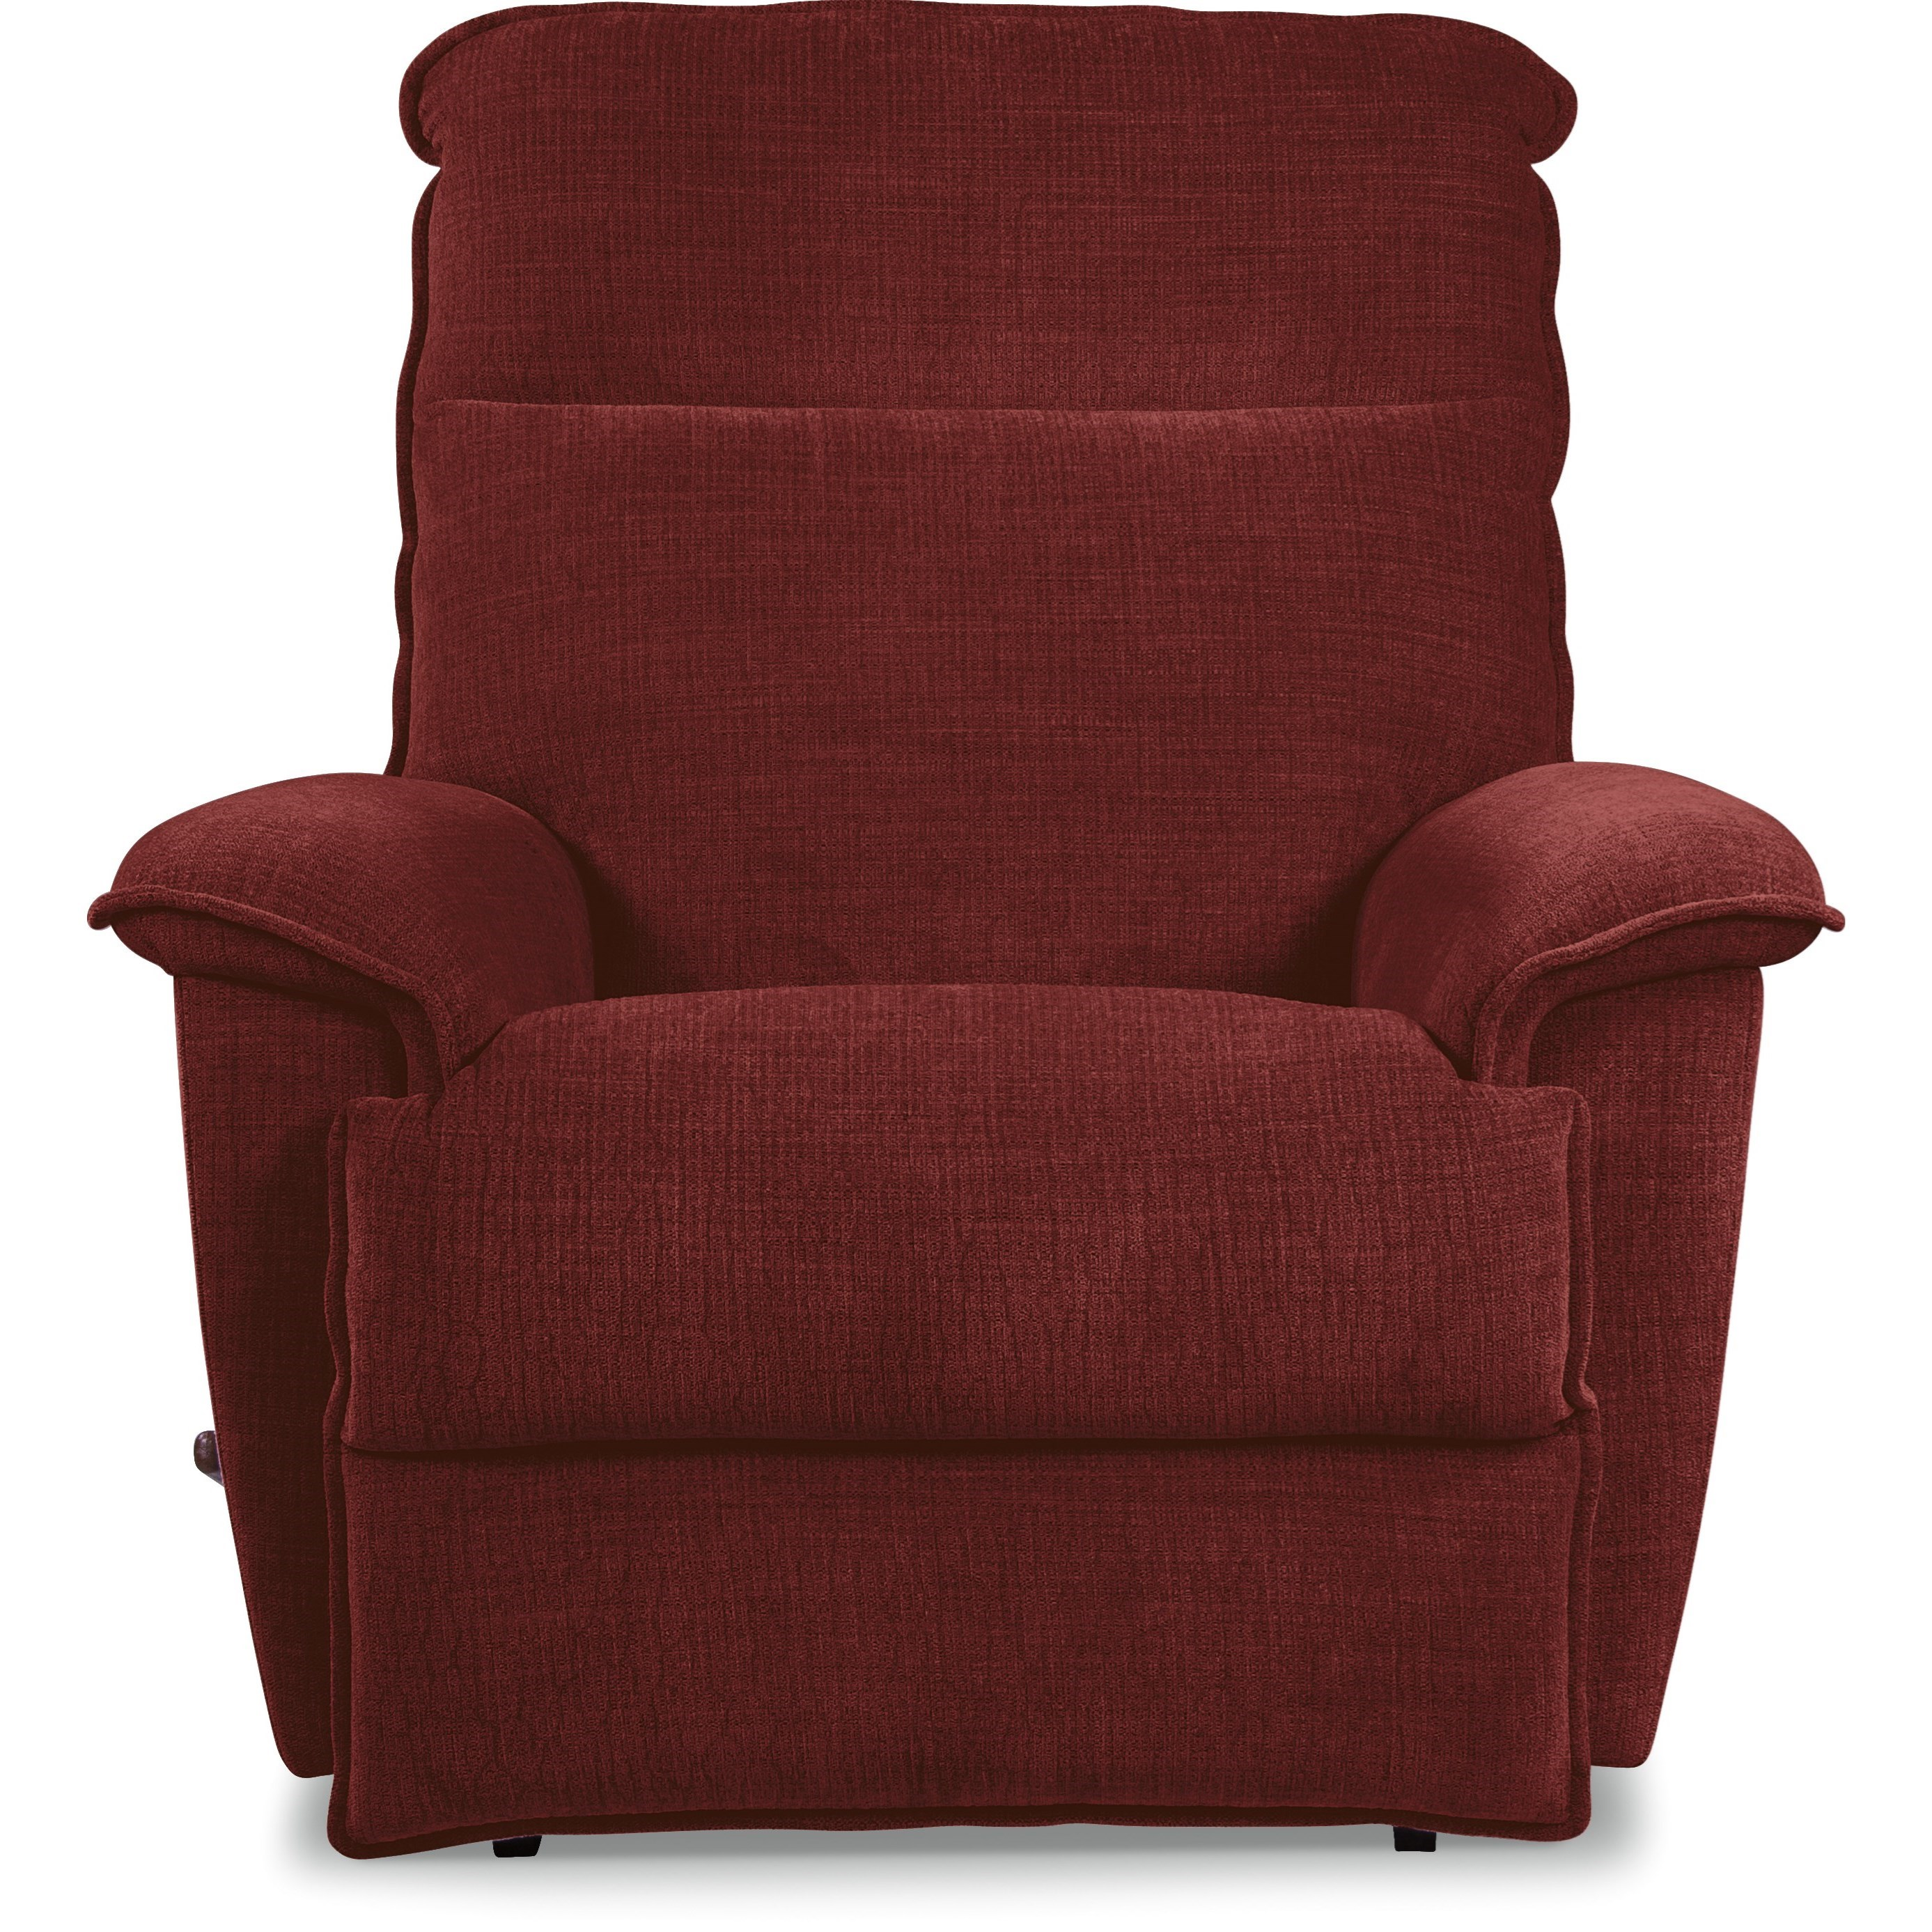 Jay Wall Recliner by La-Z-Boy at Houston's Yuma Furniture